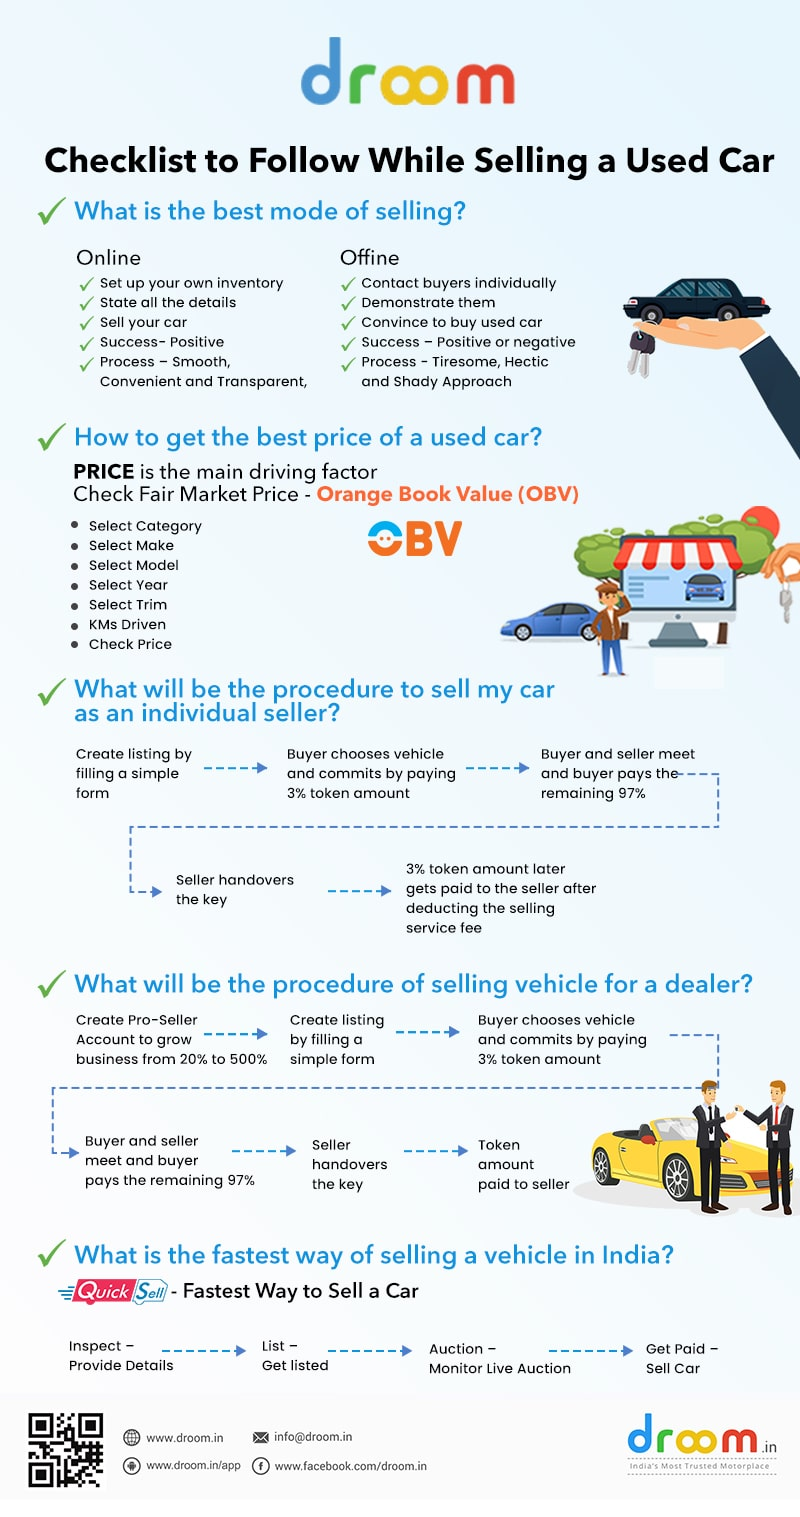 Checklist Follow While Selling Used Car